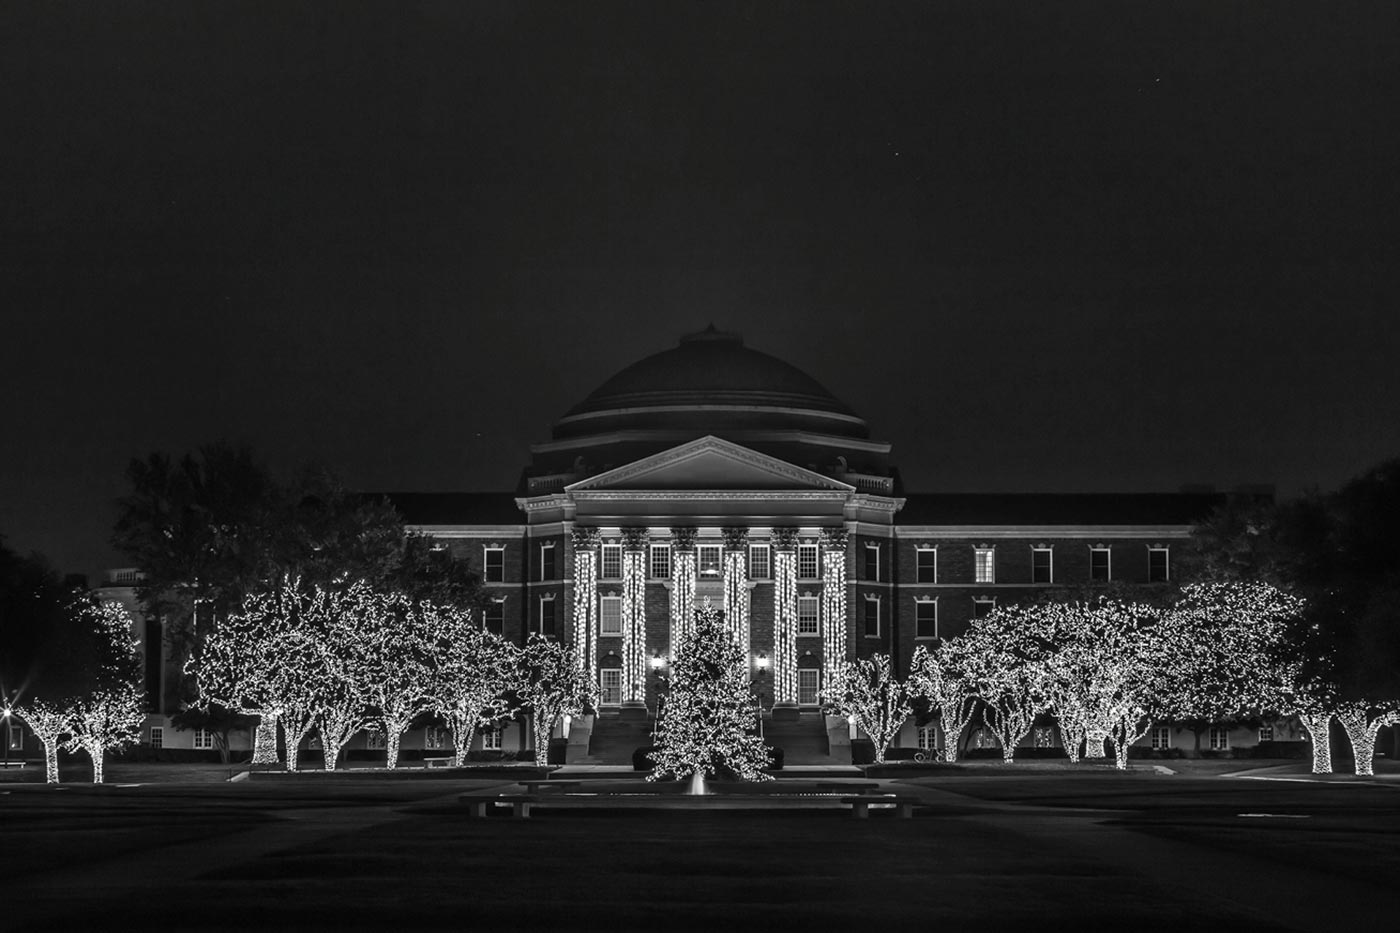 Christopher P. Coyne  - One Hundred Years of Dallas Hall